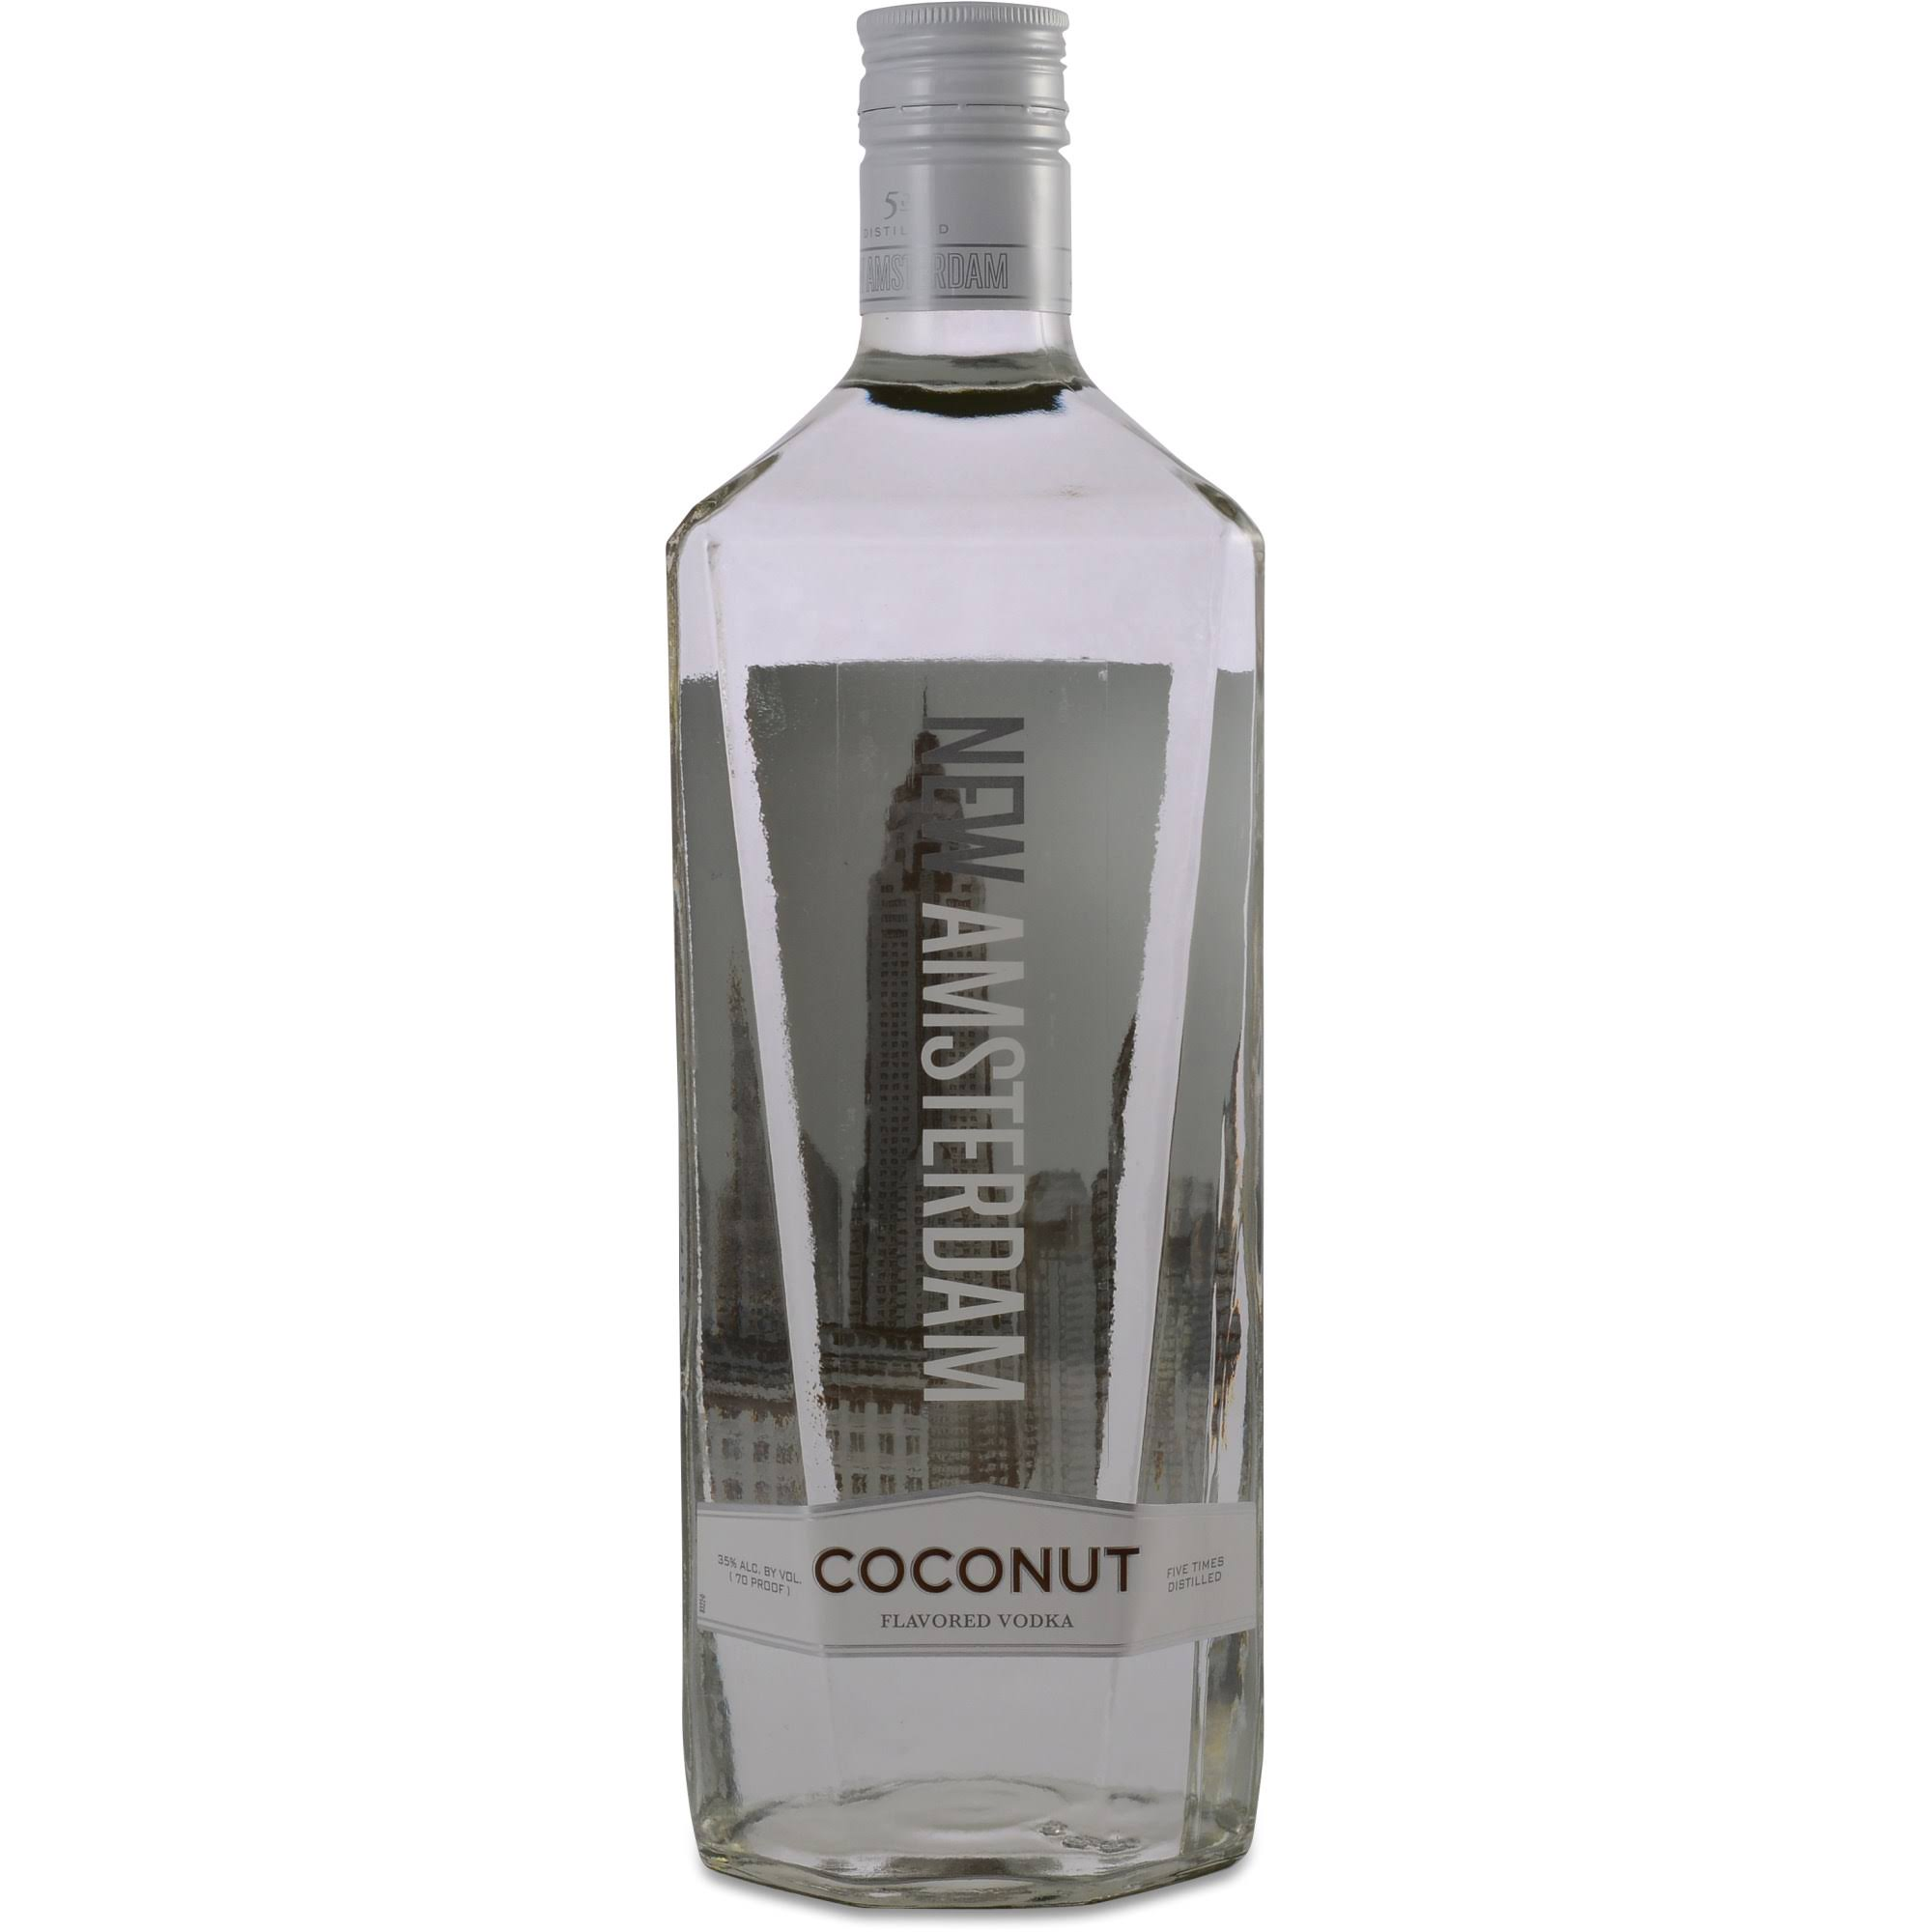 New Amsterdam Coconut Vodka - 1.75 L bottle